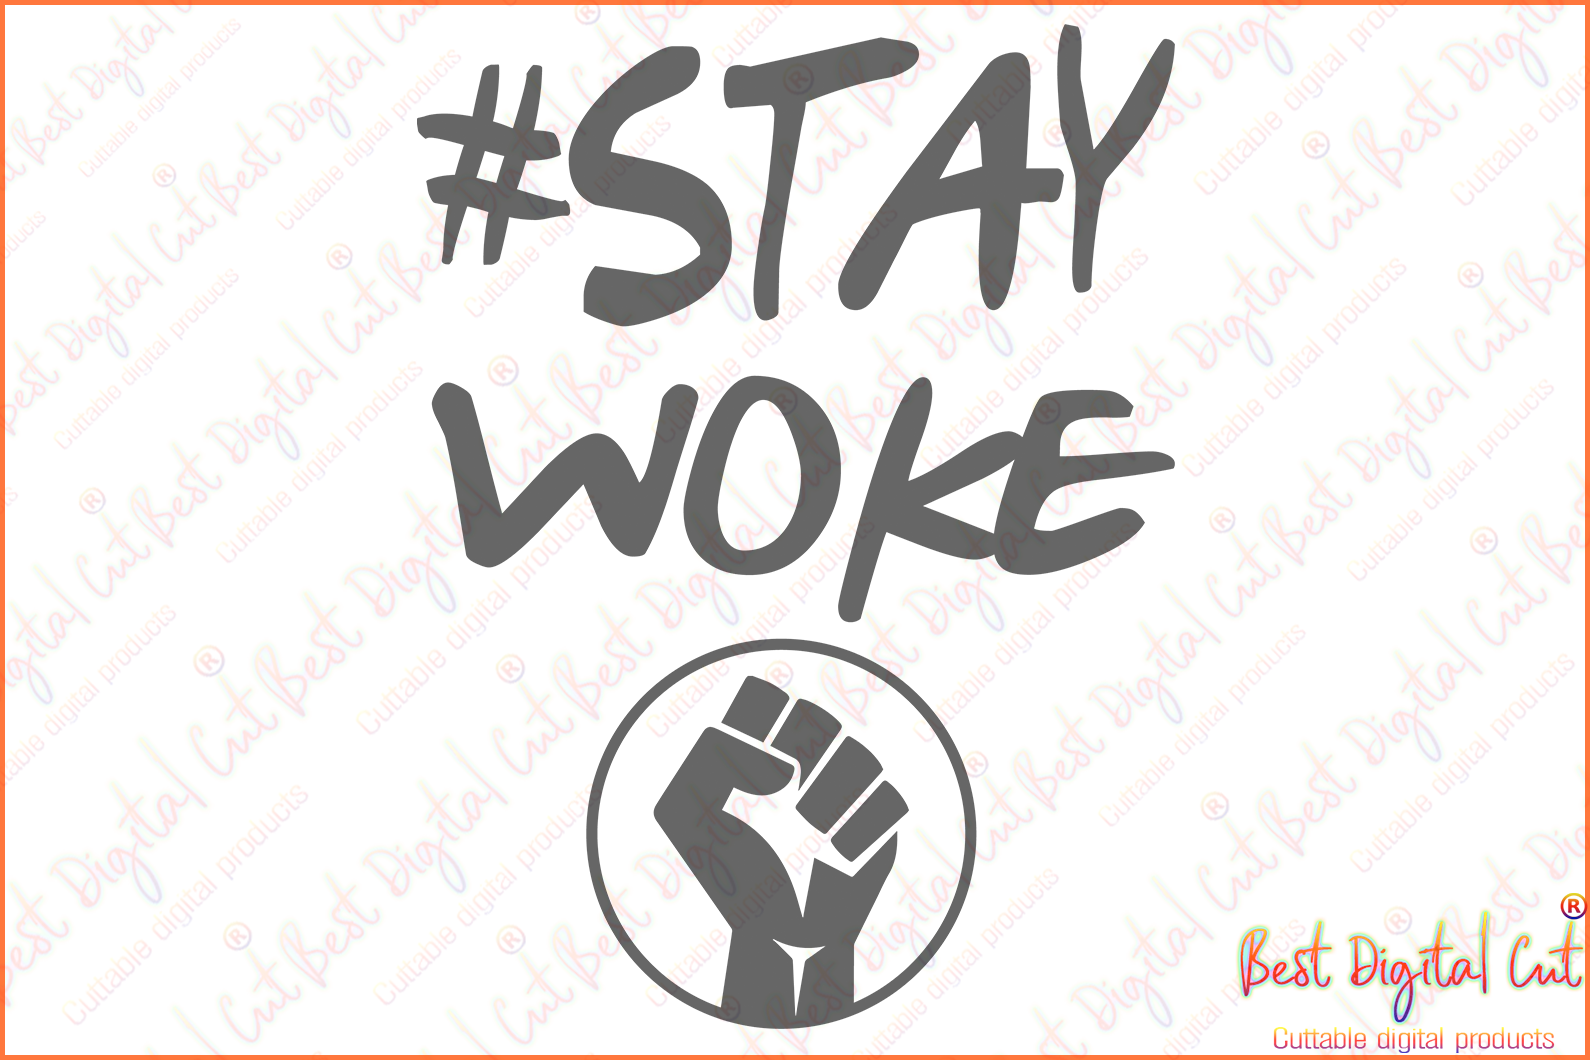 Stay woke svg,black lives matter svg,black power,back history,black man's death,police fired,criminal charges,protesters svg,American new,black man svg,police officer,killing svg,vilence svg,protester American